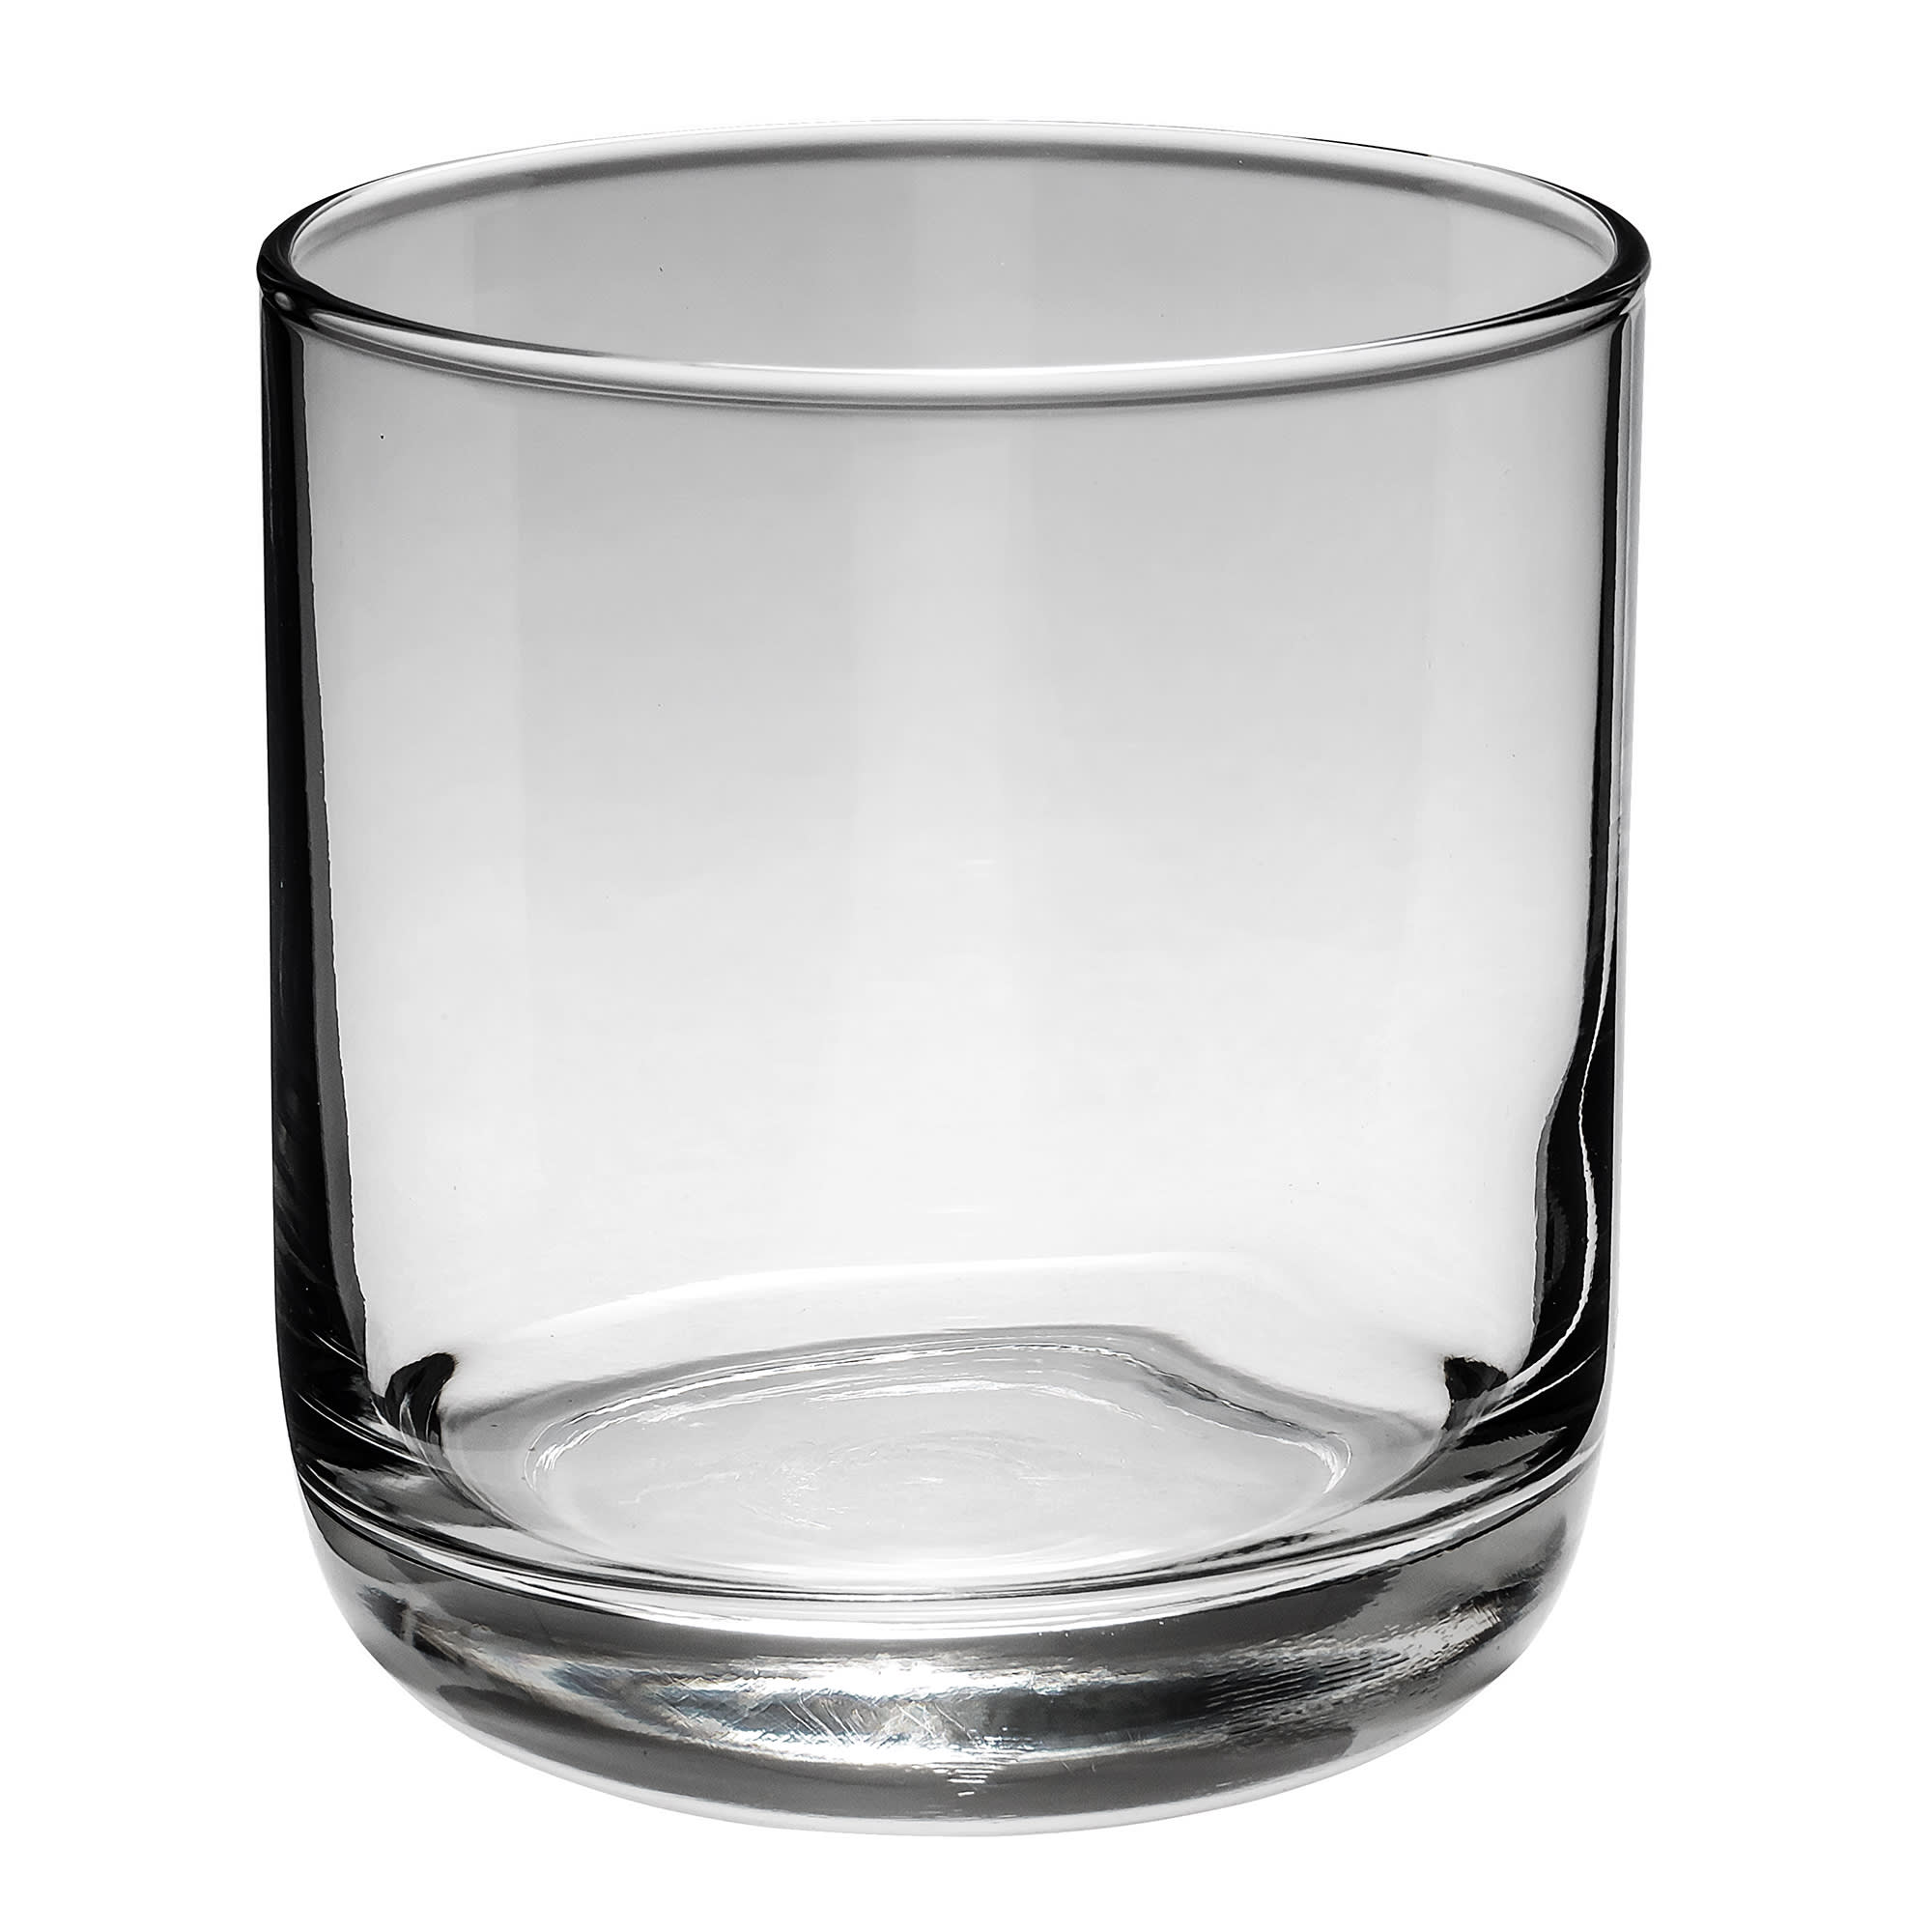 Libbey 494 10-oz Room Tumbler Glass - Safedge Rim Guarantee